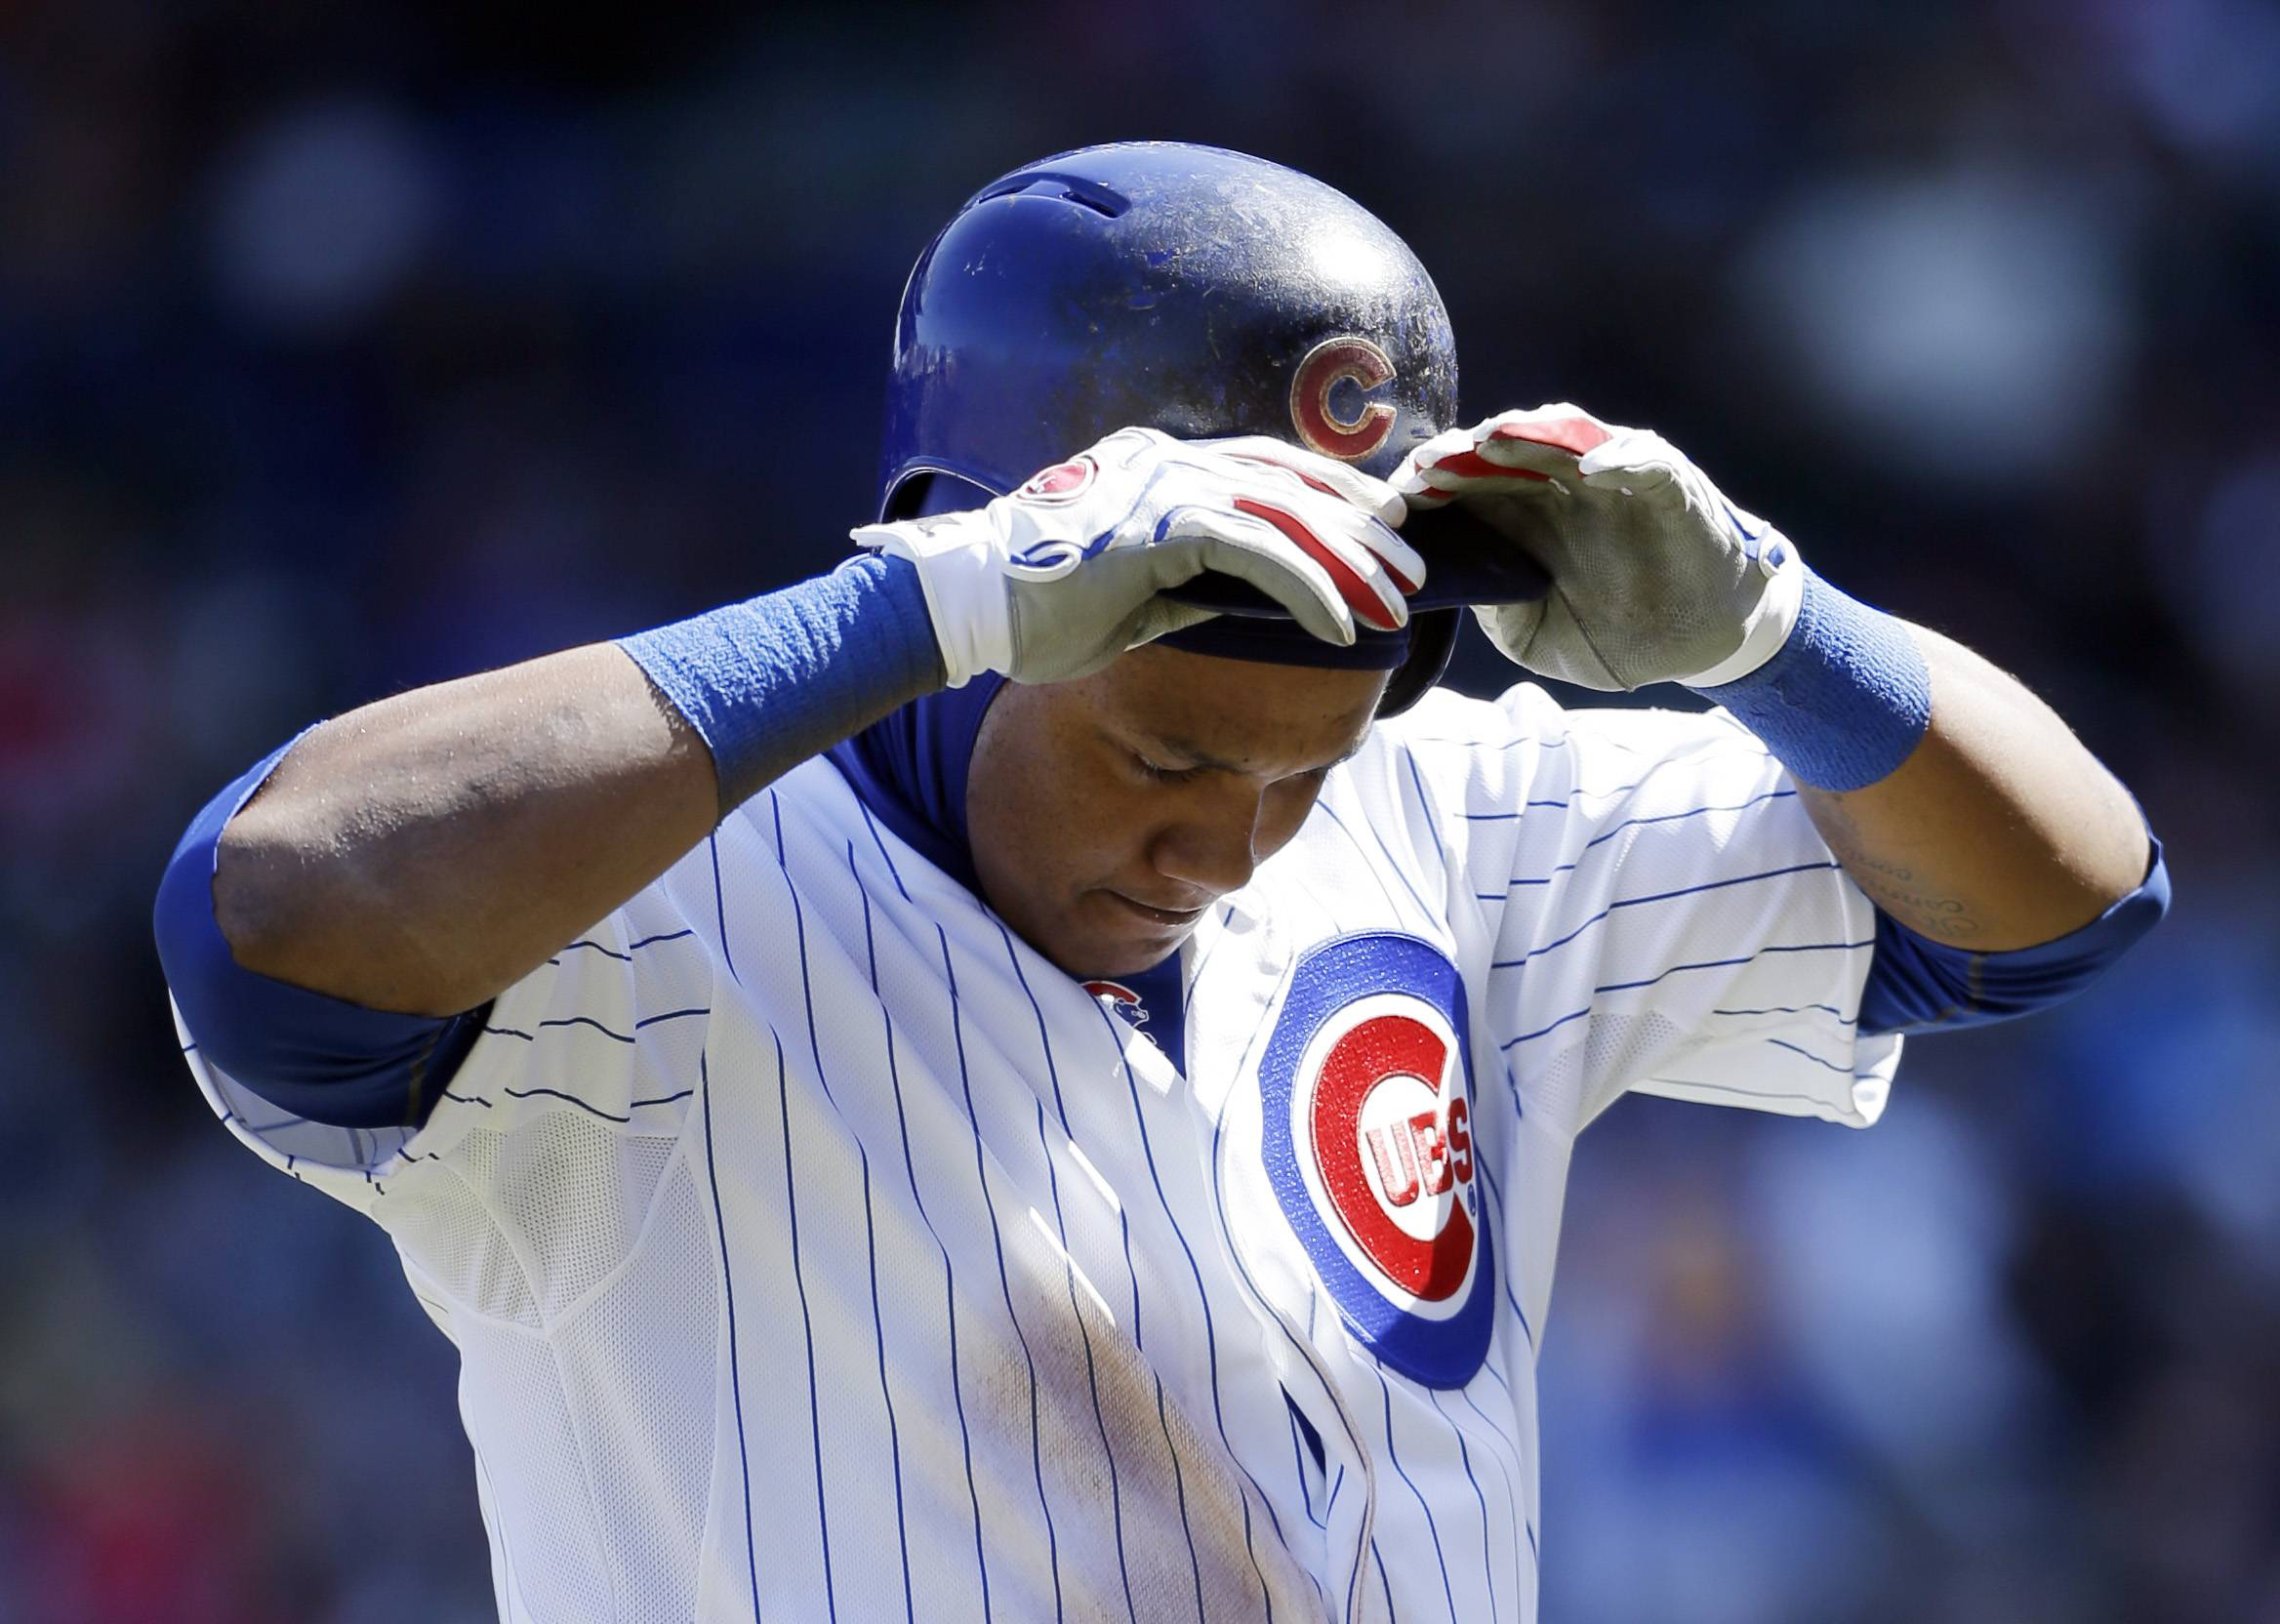 The Cubs' Starlin Castro is hitting .238 after five games.